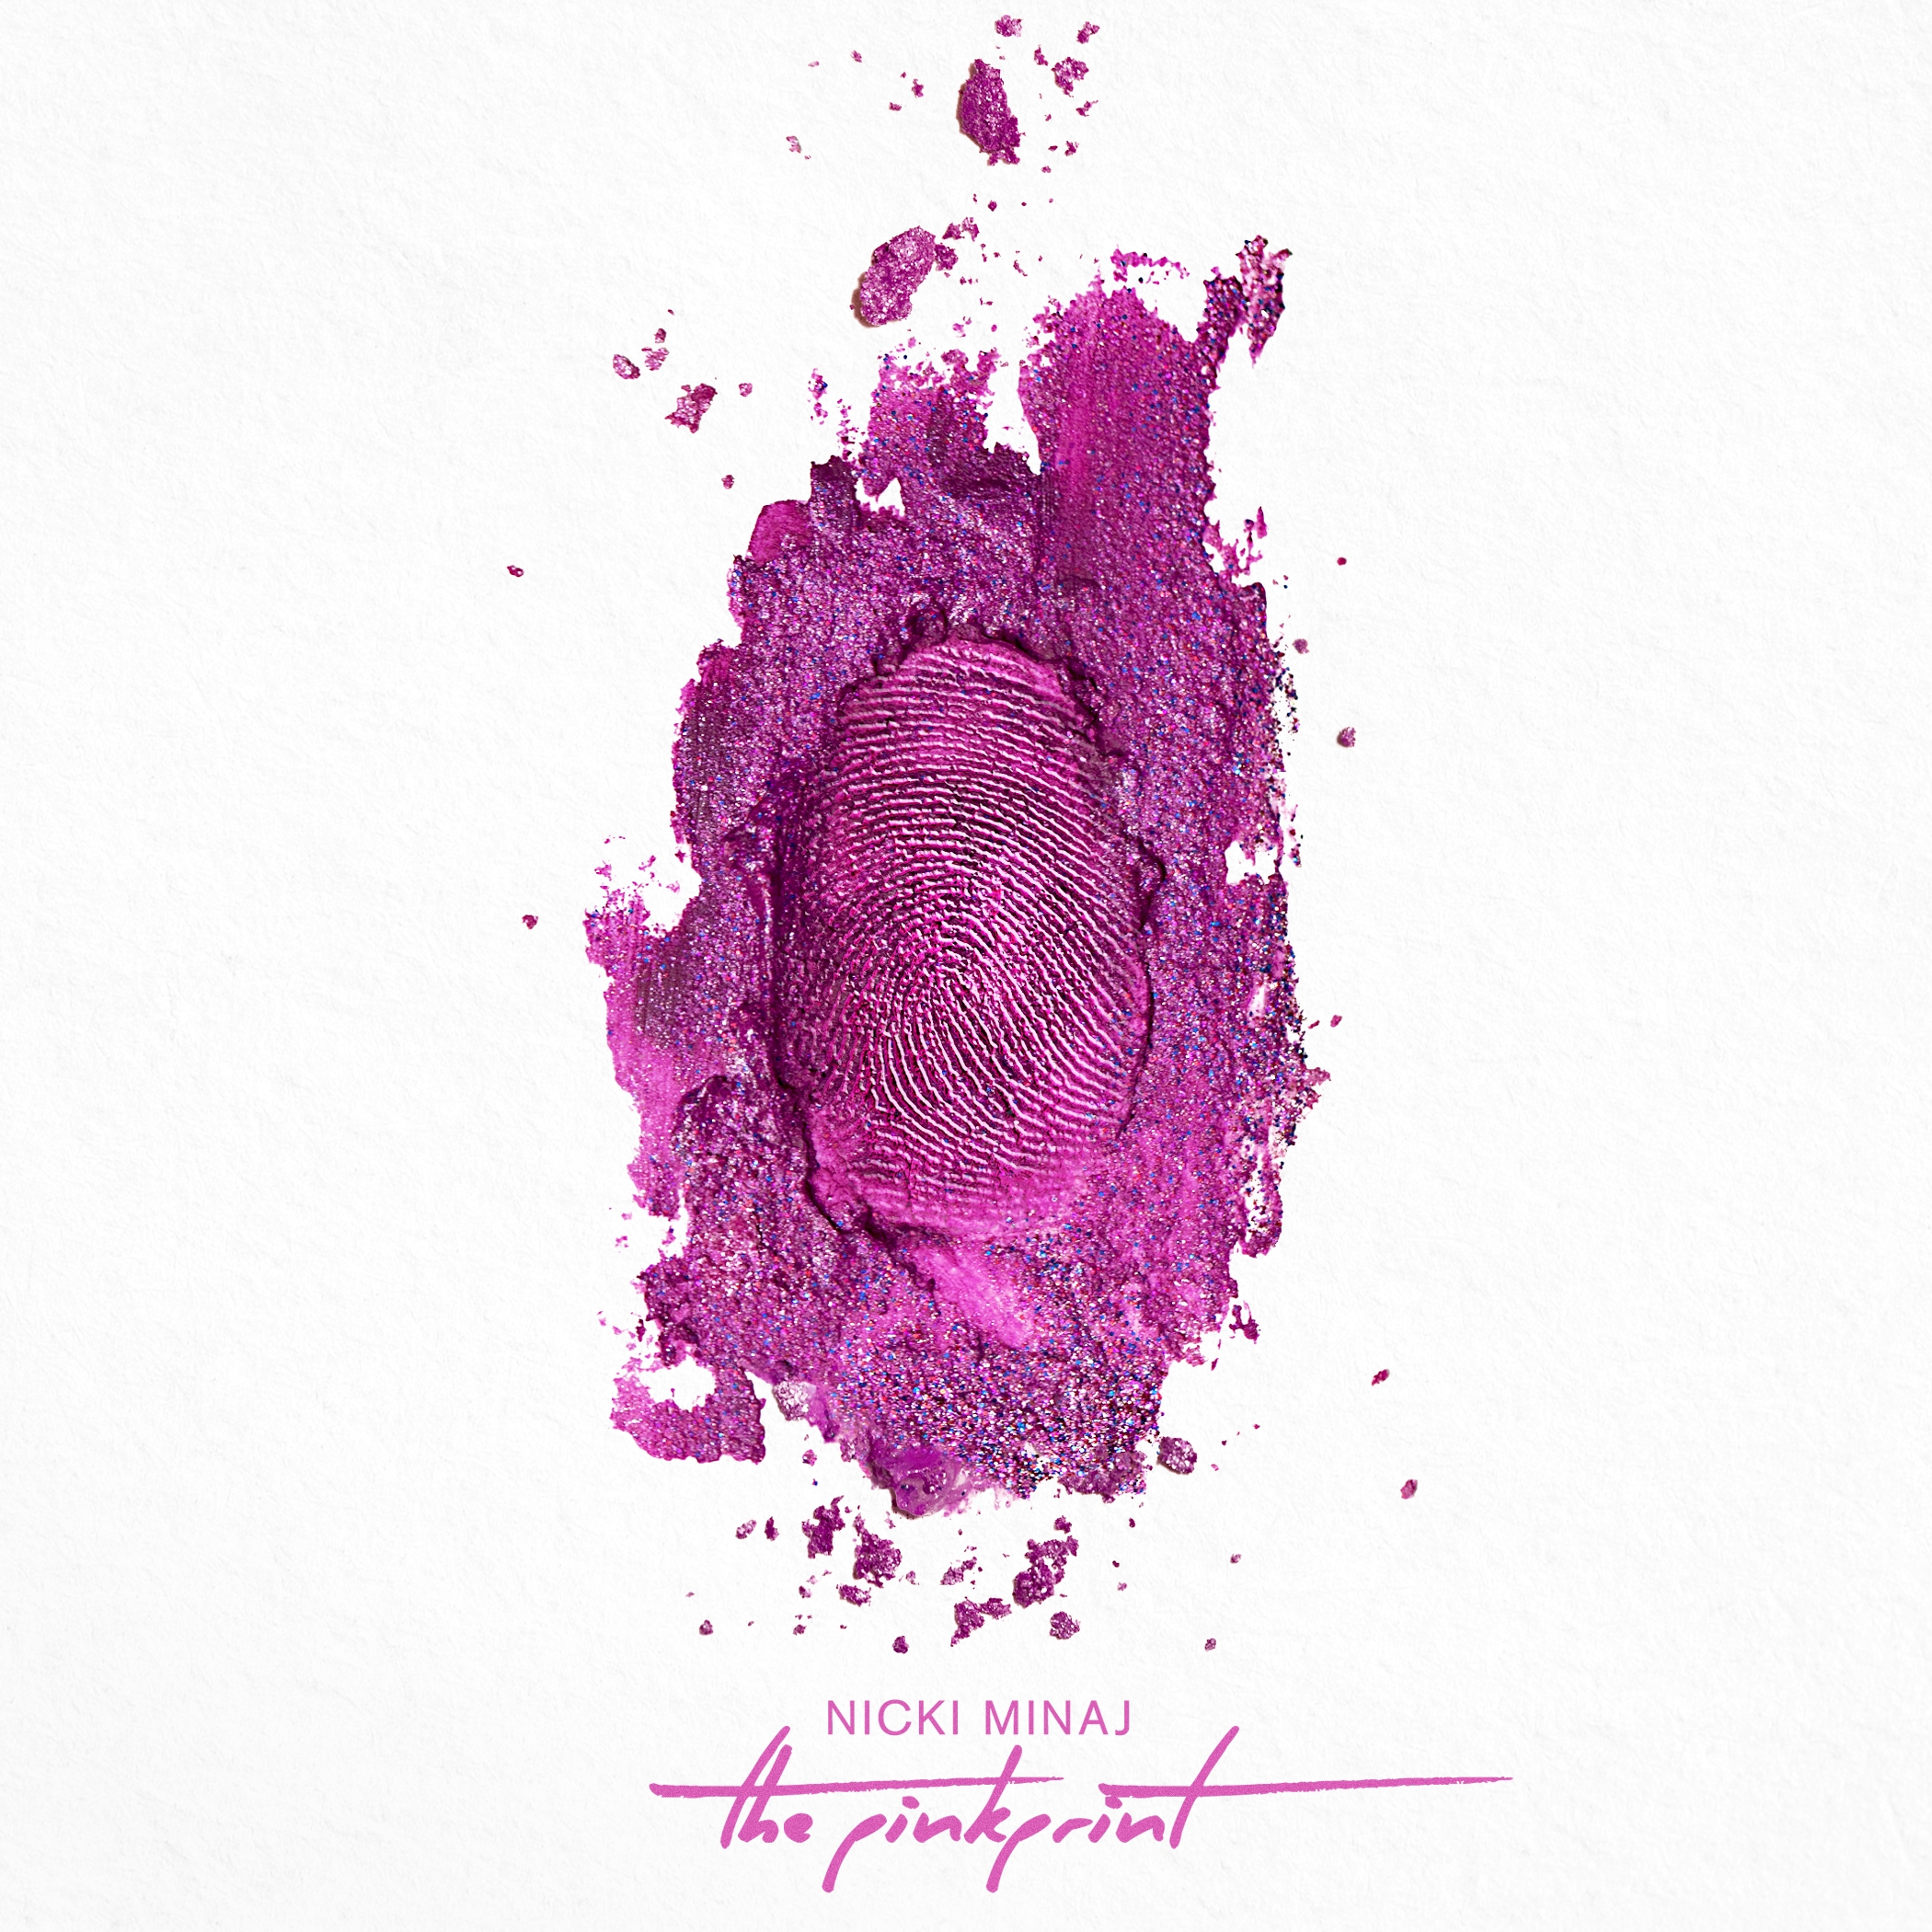 The_pinkprint_deluxe_cover.png